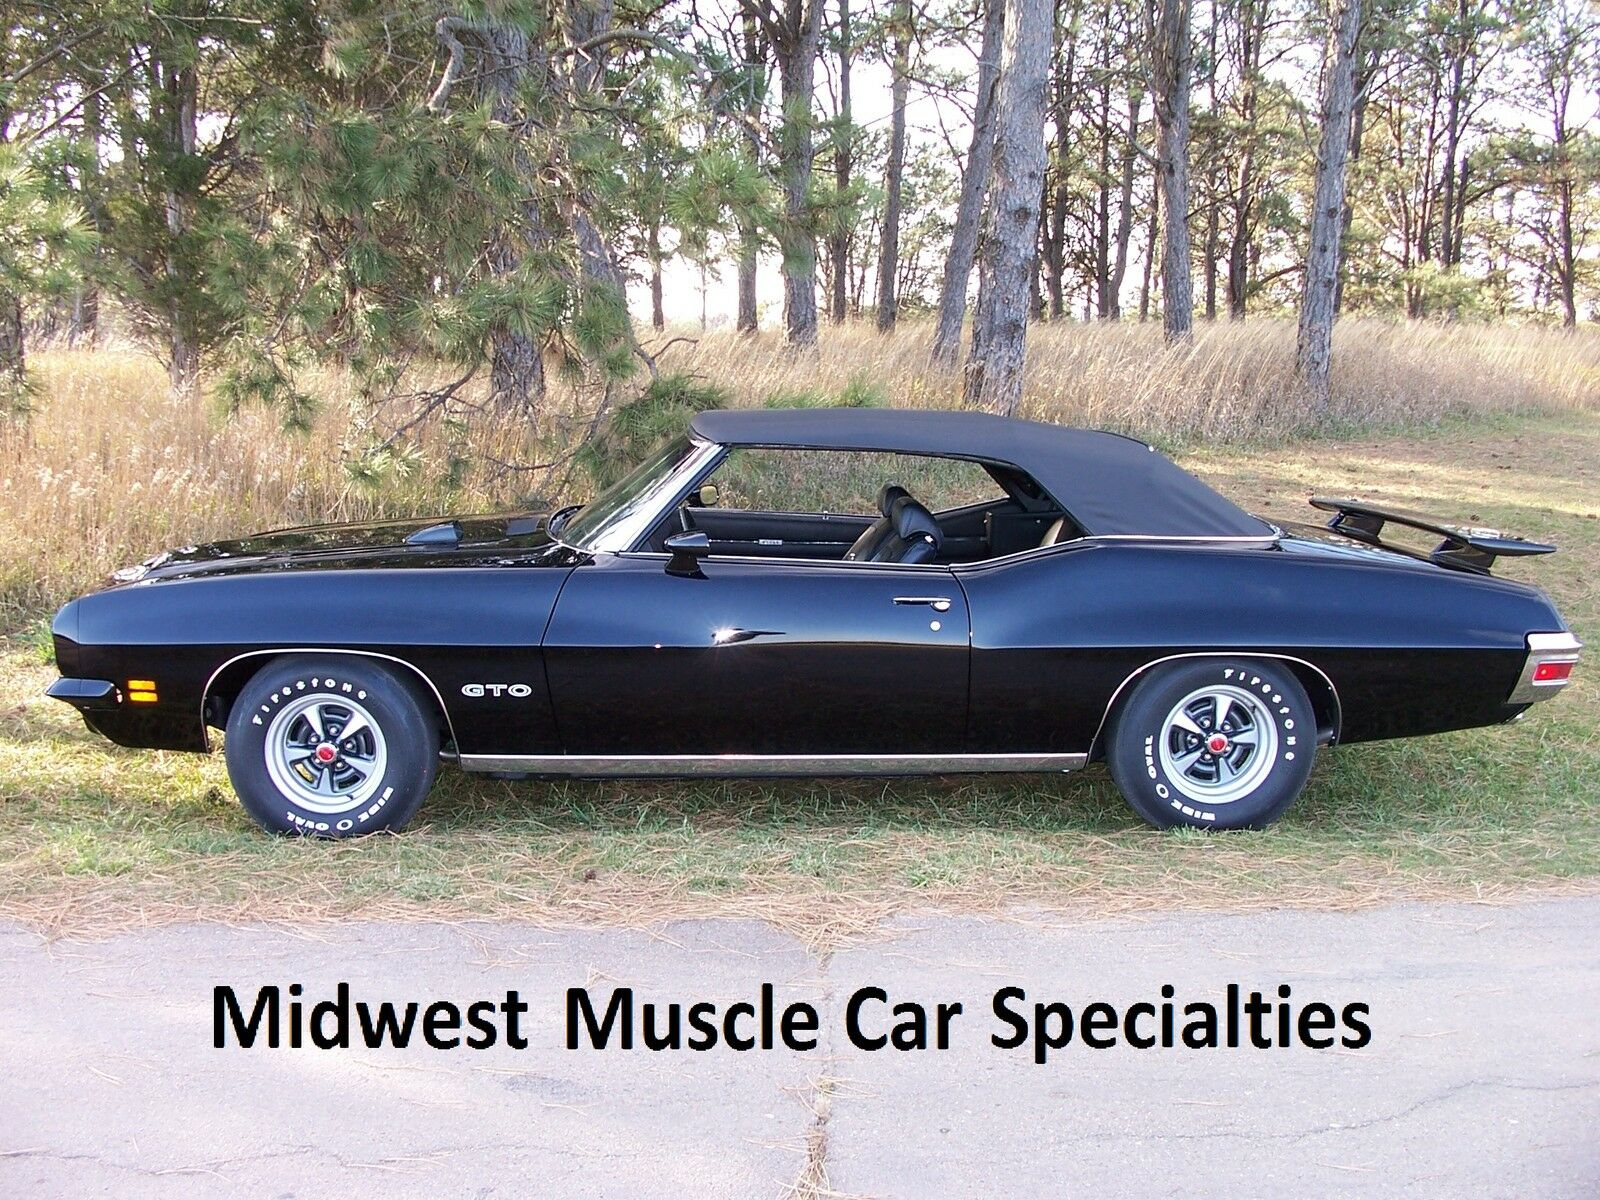 midwestmusclecarspecialties